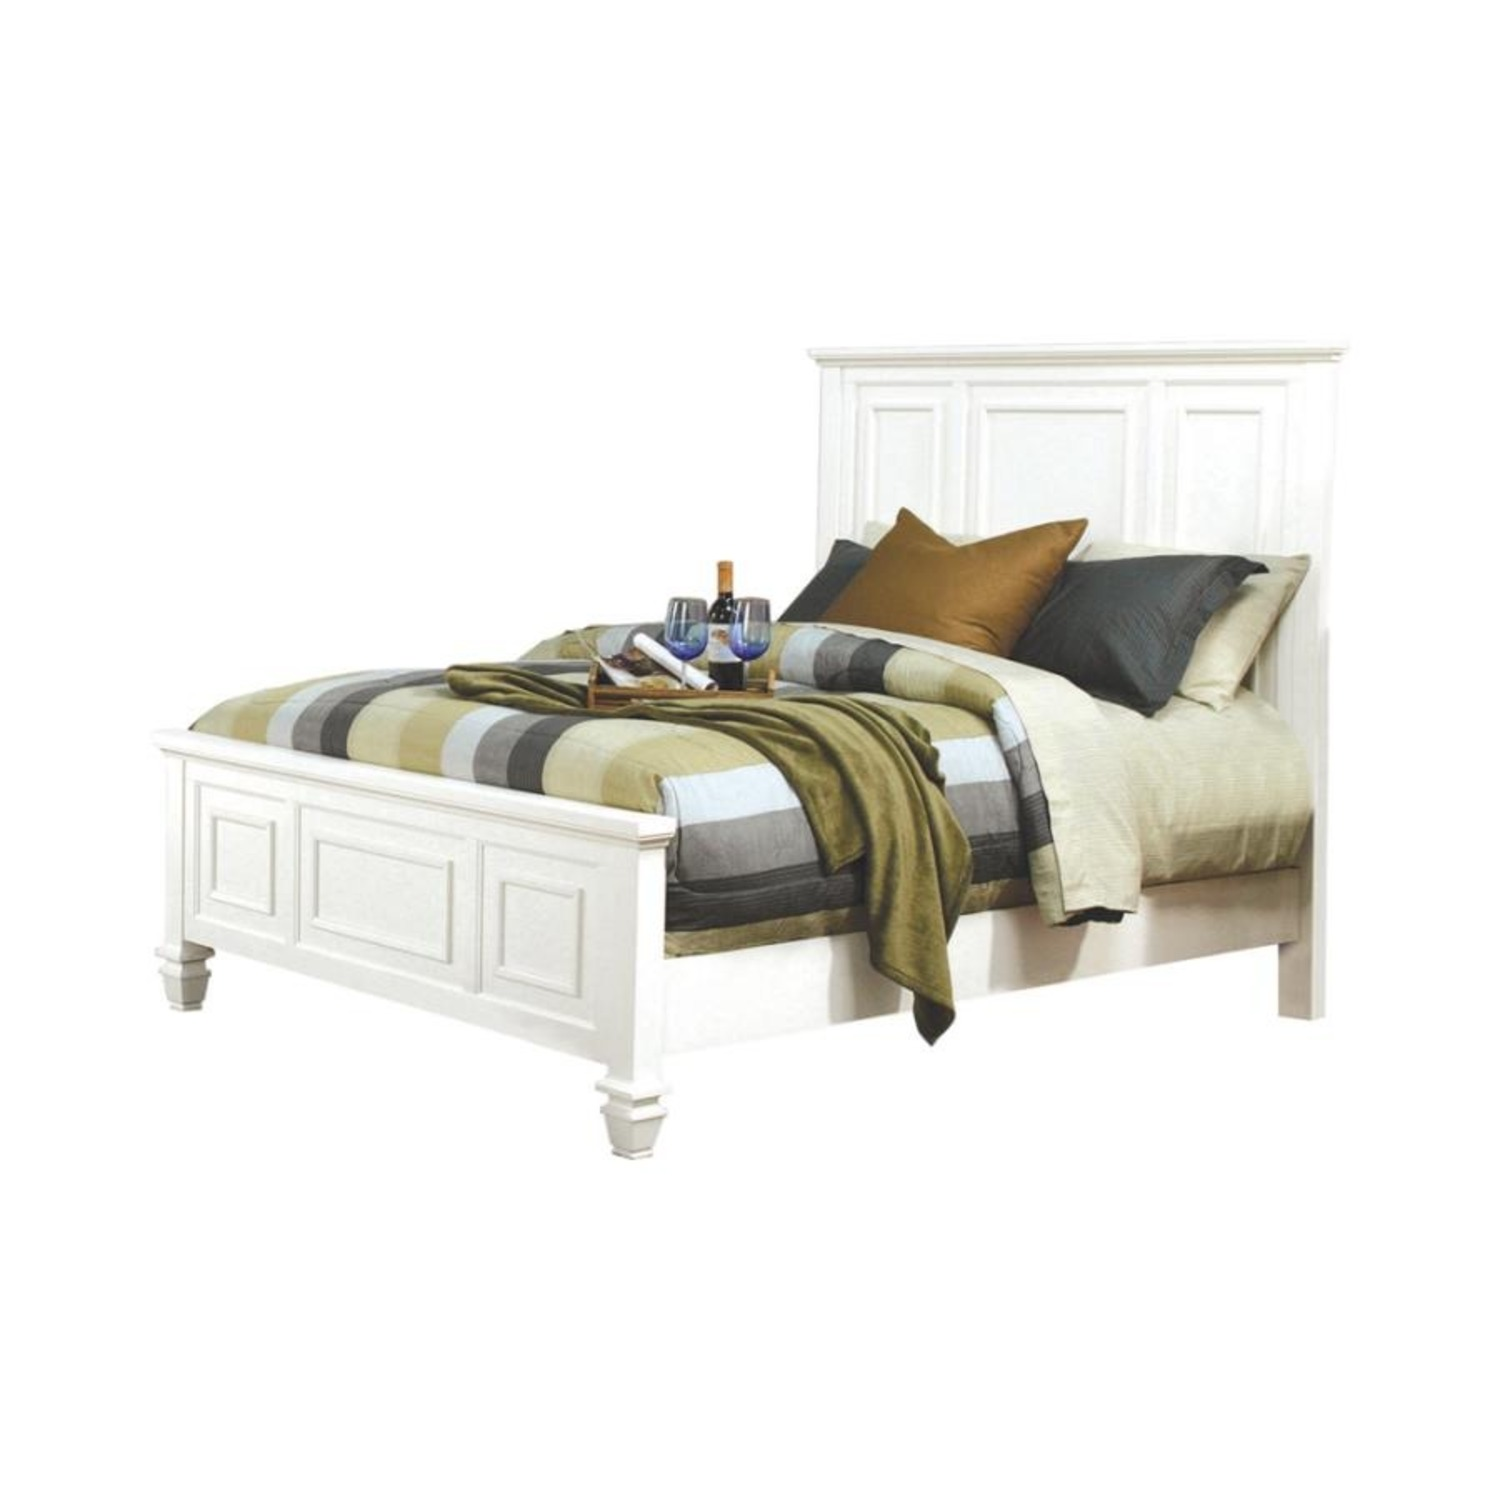 Cottage-Style Queen Bed In White Finish - image-0